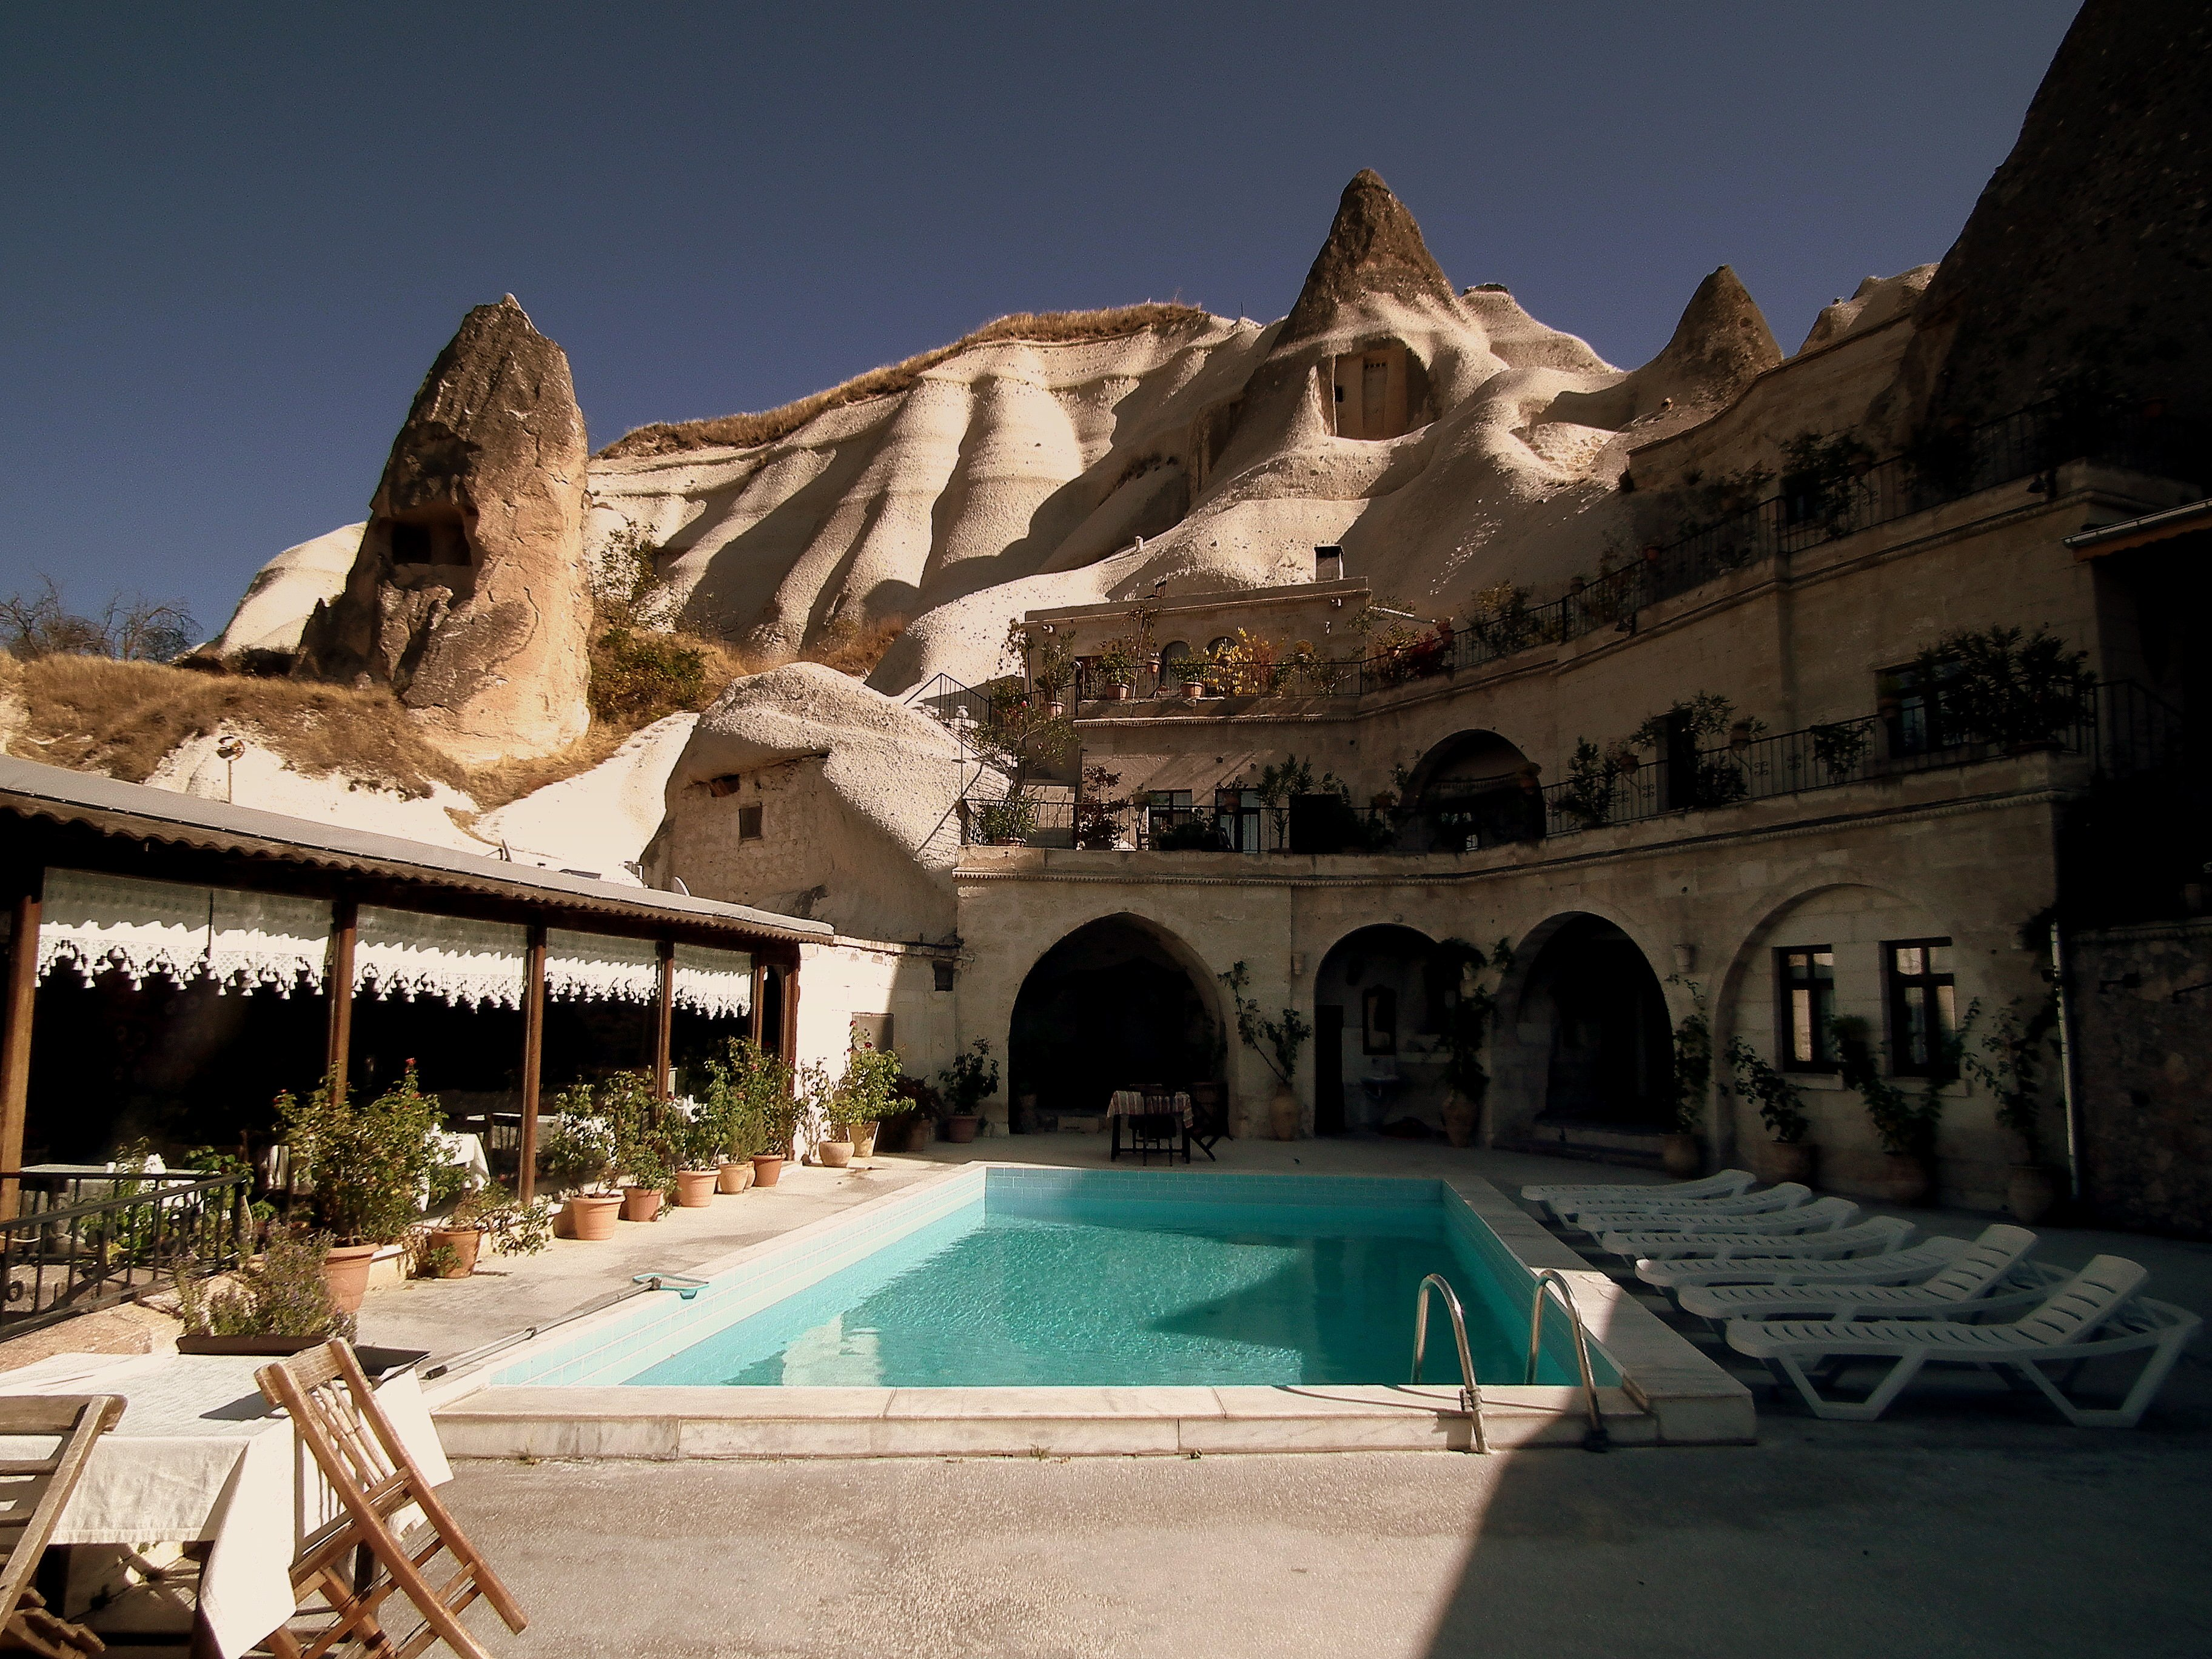 LOCAL CAVE HOUSE HOTEL GOREME CAPPADOCIA CENTRAL TURKEY OCT 2011 by: calflier001 (CC)